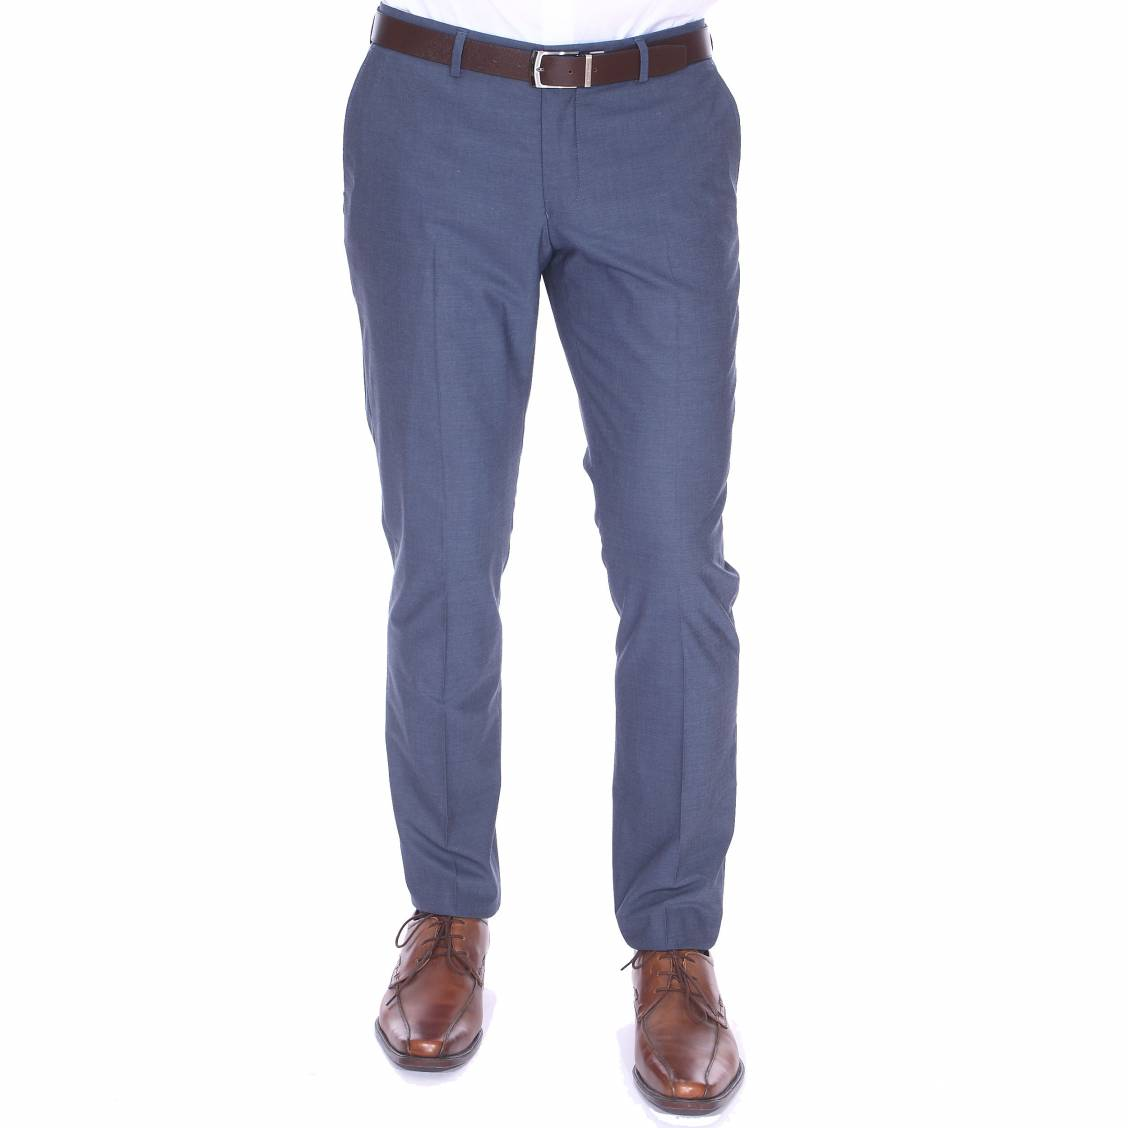 Pantalon de costume noxjack selected bleu grisé